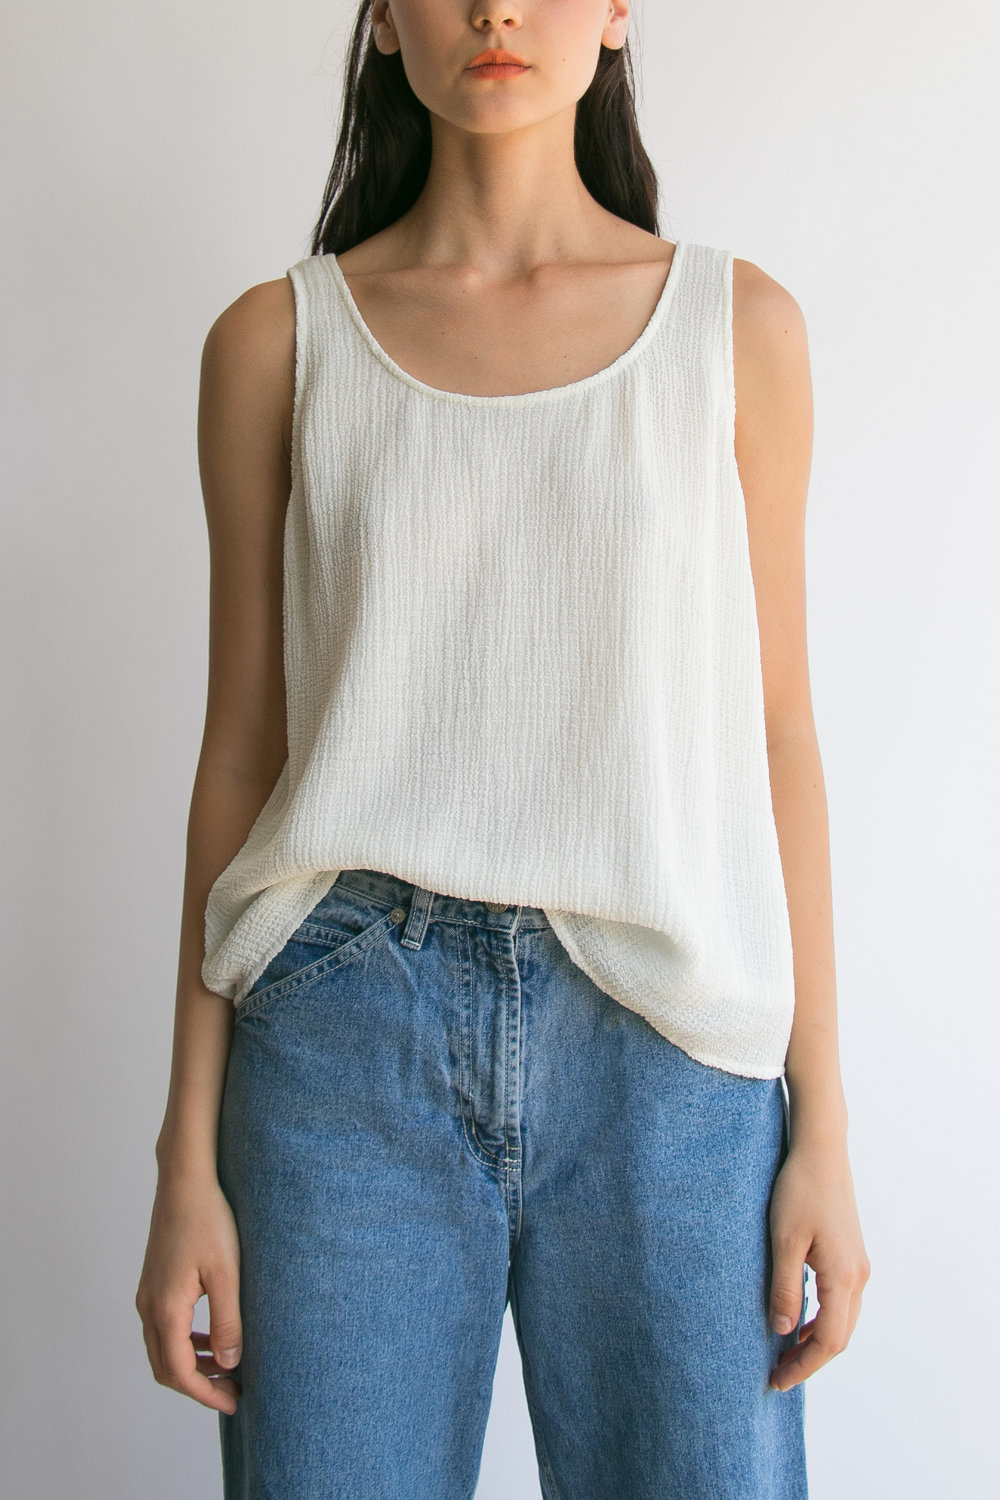 A Part of the Rest Vintage Style Nostalgia_Christie_Brinkley_Lampoons_I_am_that_shop_textured_tank.jpg